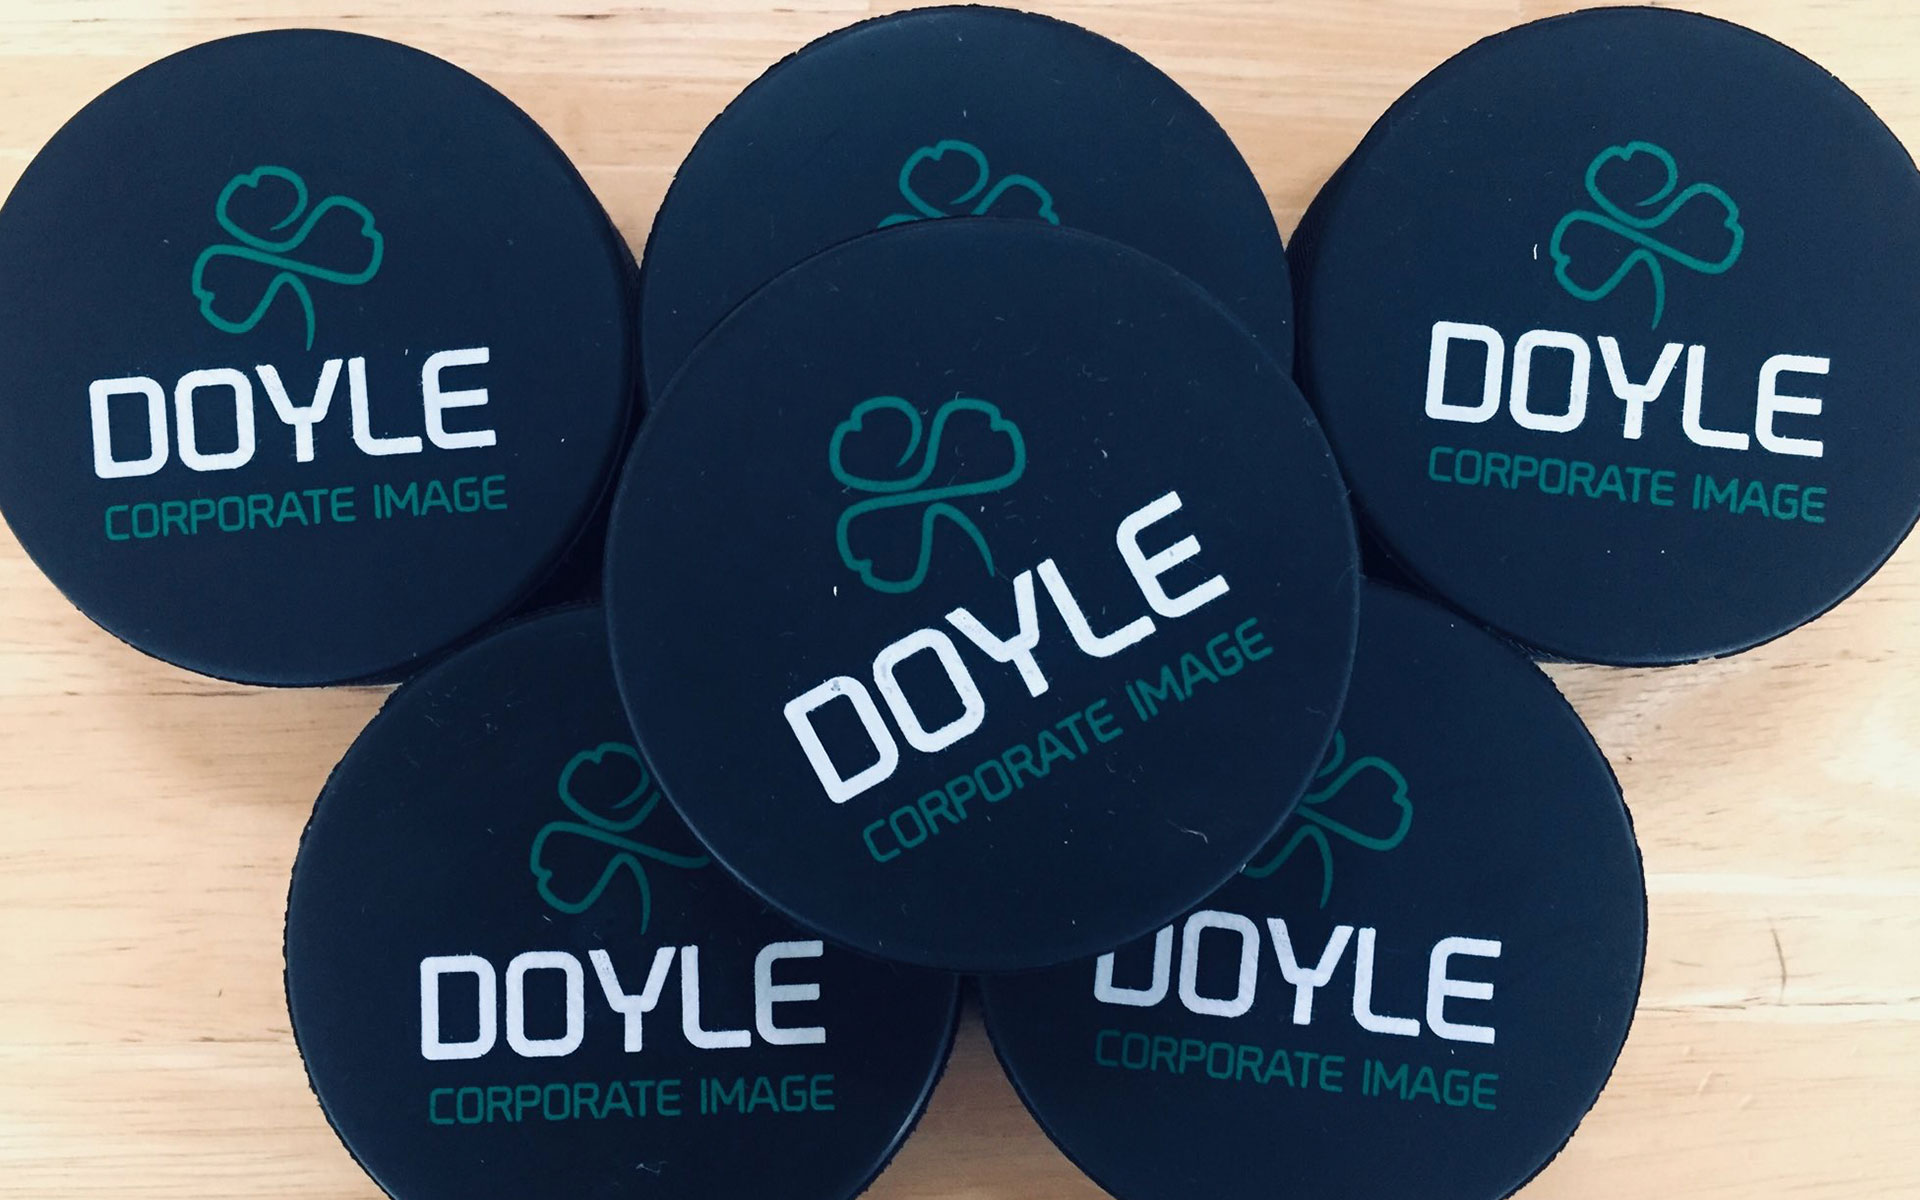 doyle_corporate_image_promotional_products